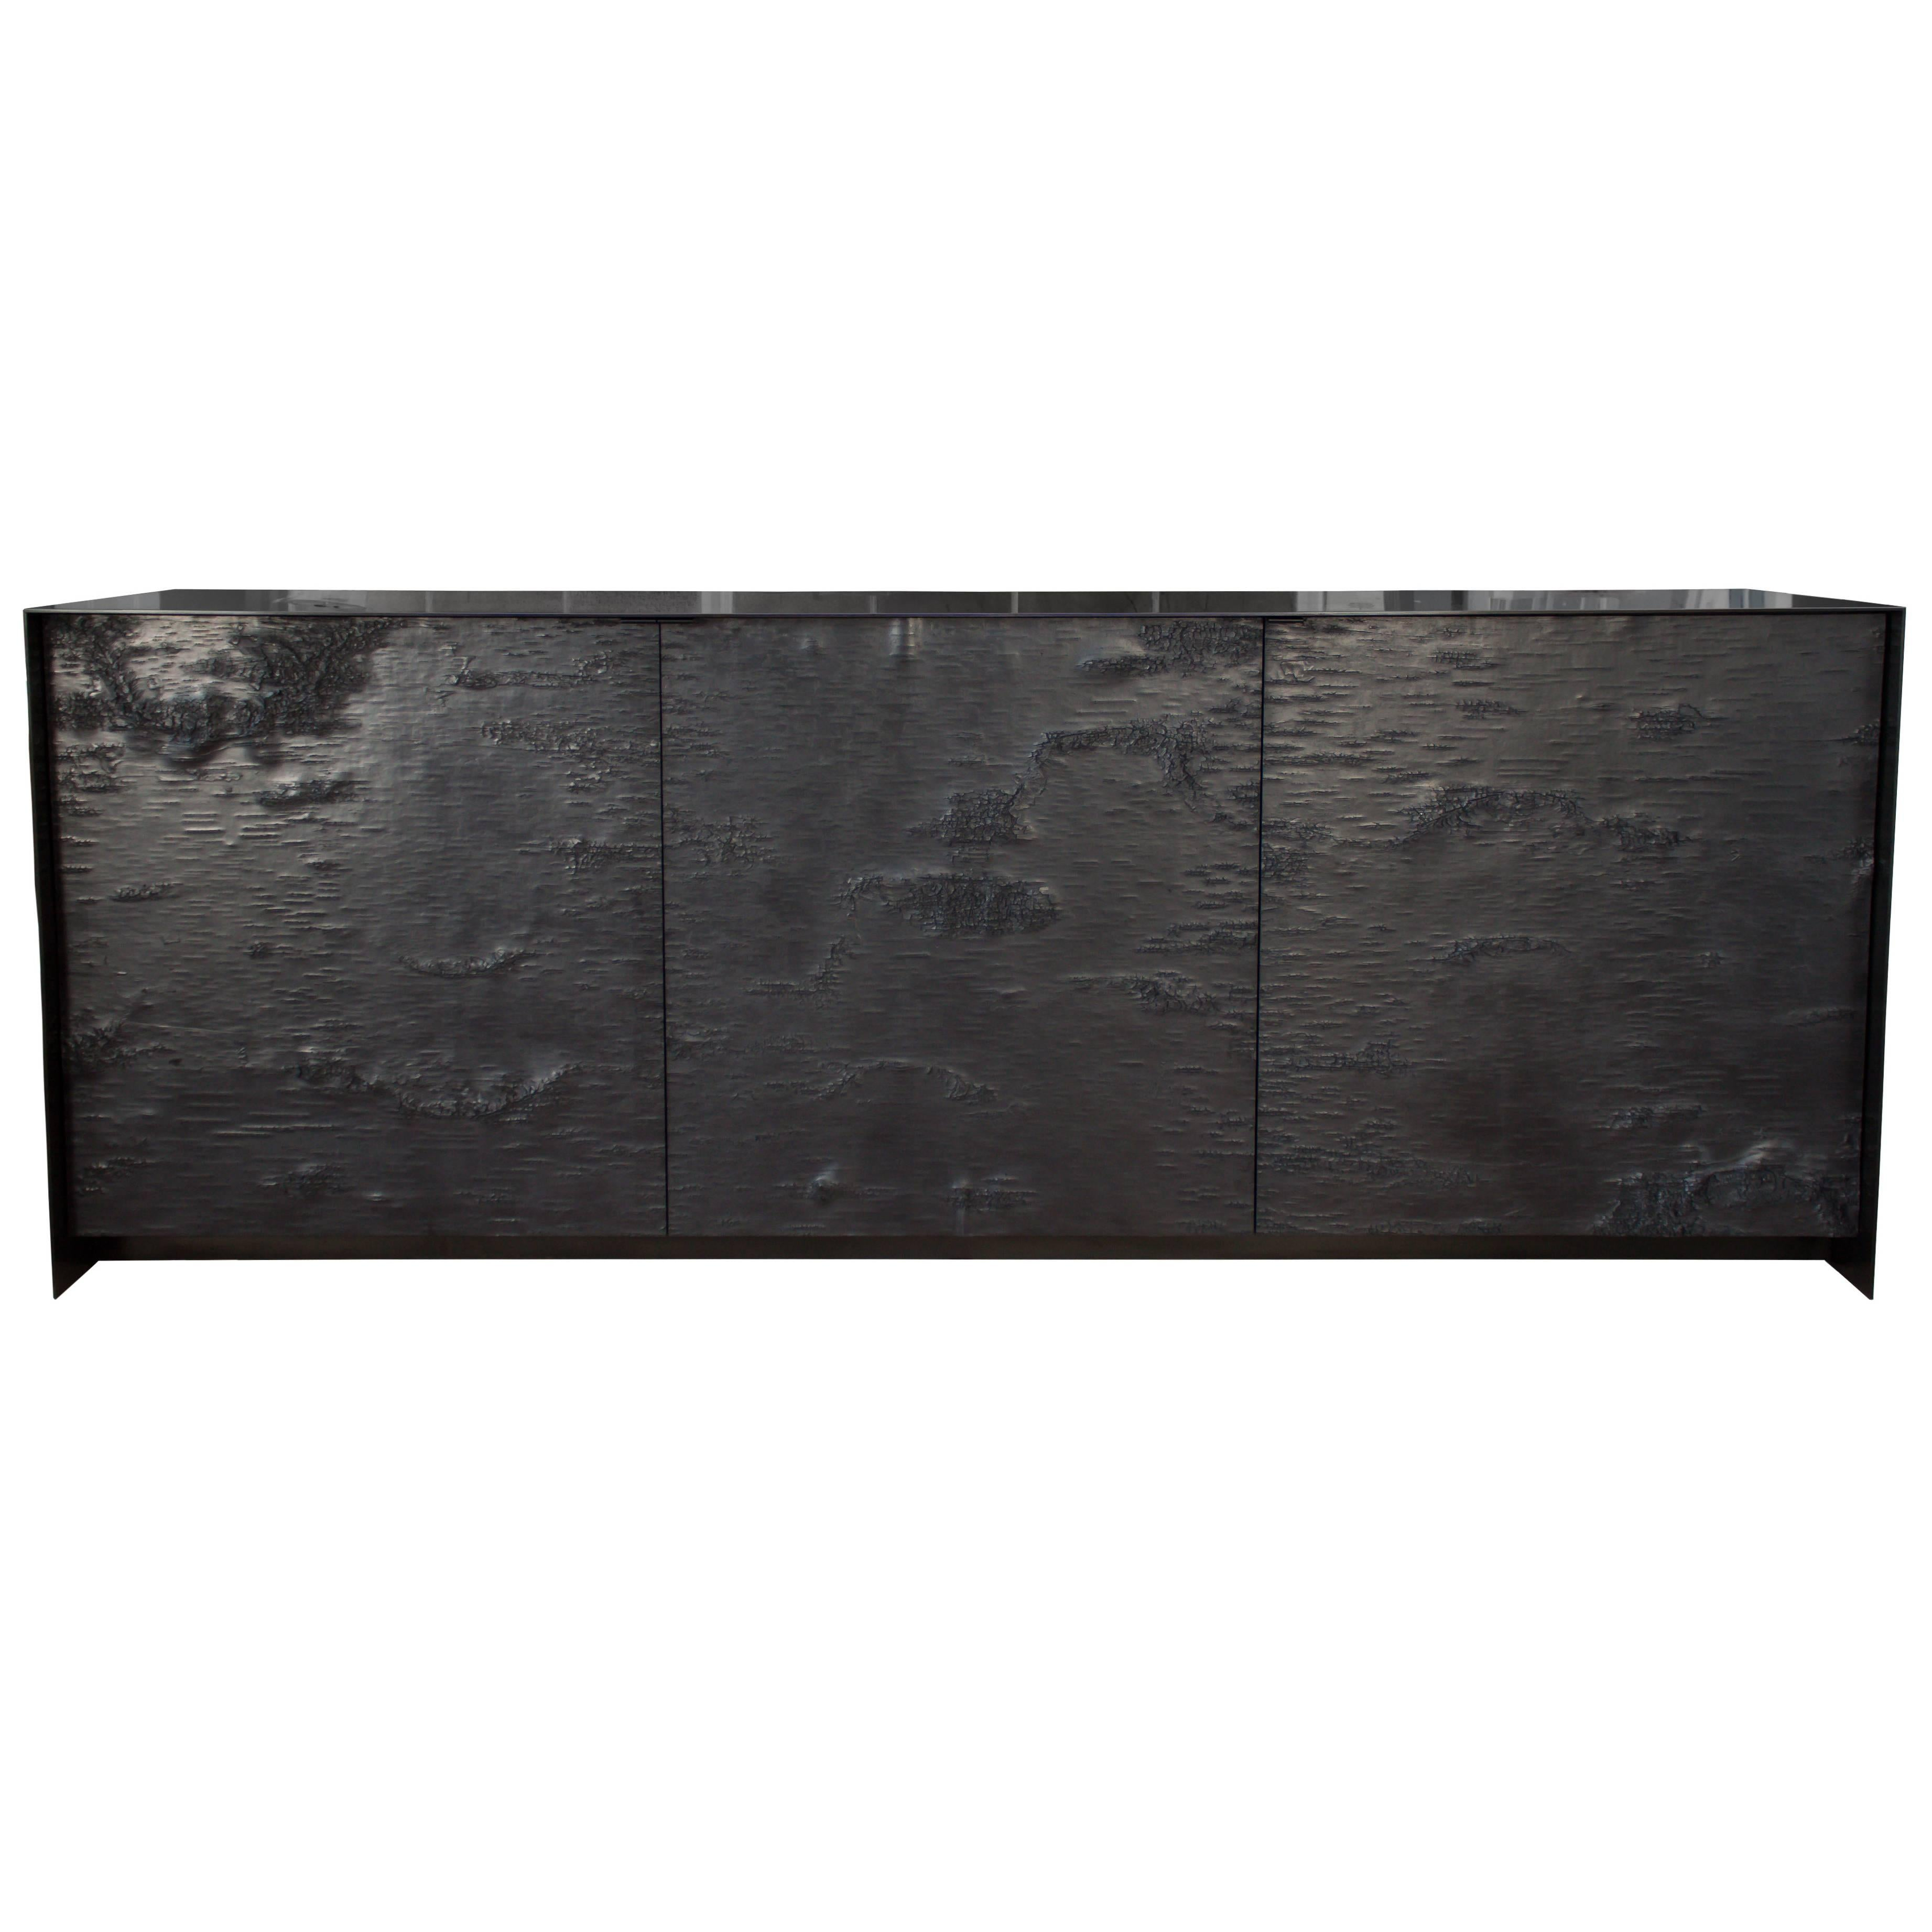 Winabojo Birch Bark Graphite Credenza Ii Customizable For Sale At